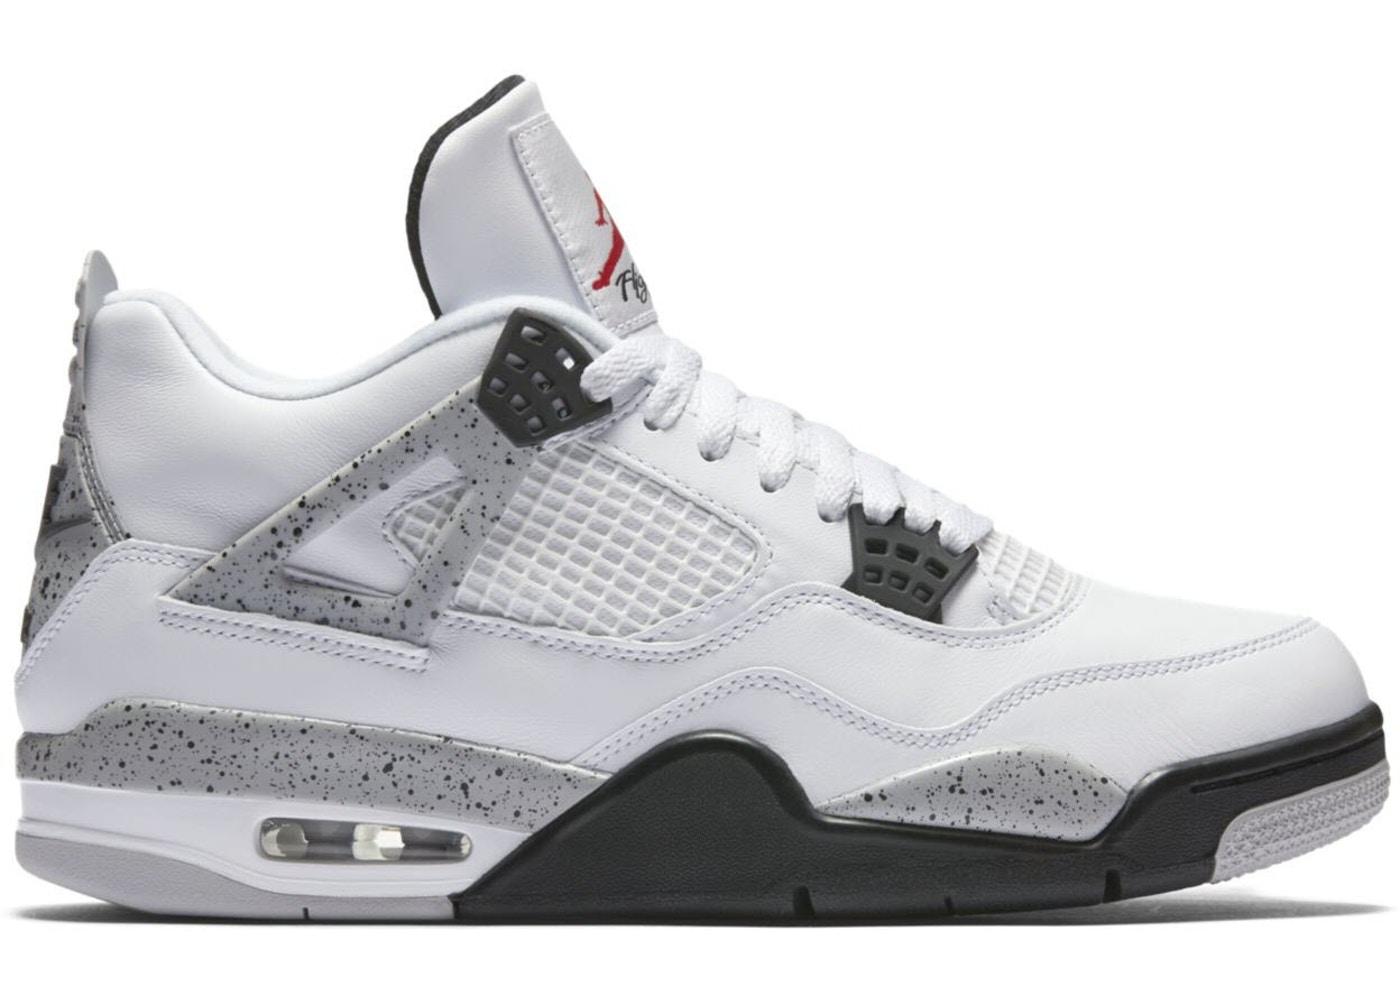 0dbe40aa8cd Jordan 4 Retro White Cement (2016) - 840606-192